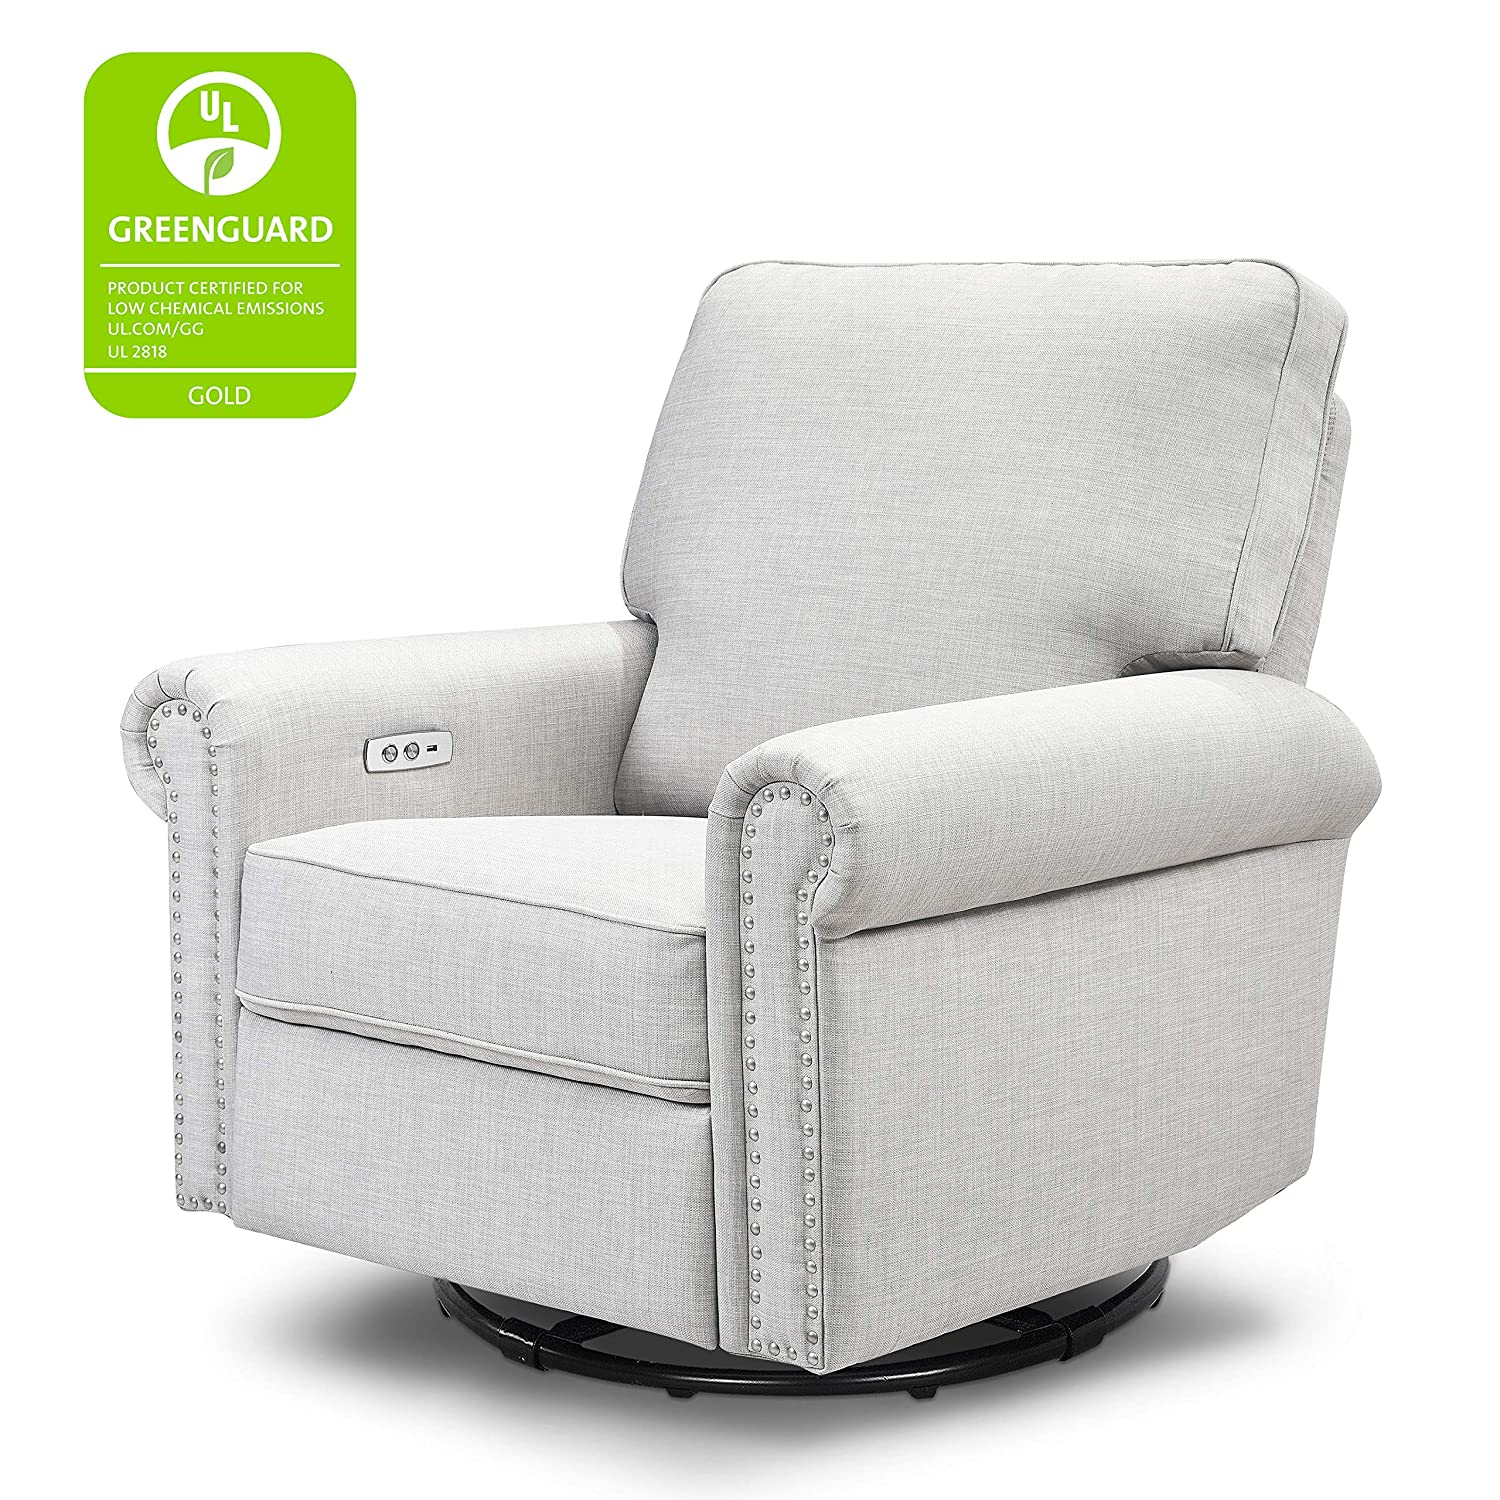 Million Dollar Baby Classic Linden Power Recliner and Swivel Glider in Light Grey Tweed USB Charging Port Push-Button Electronic Reclining Mechanism